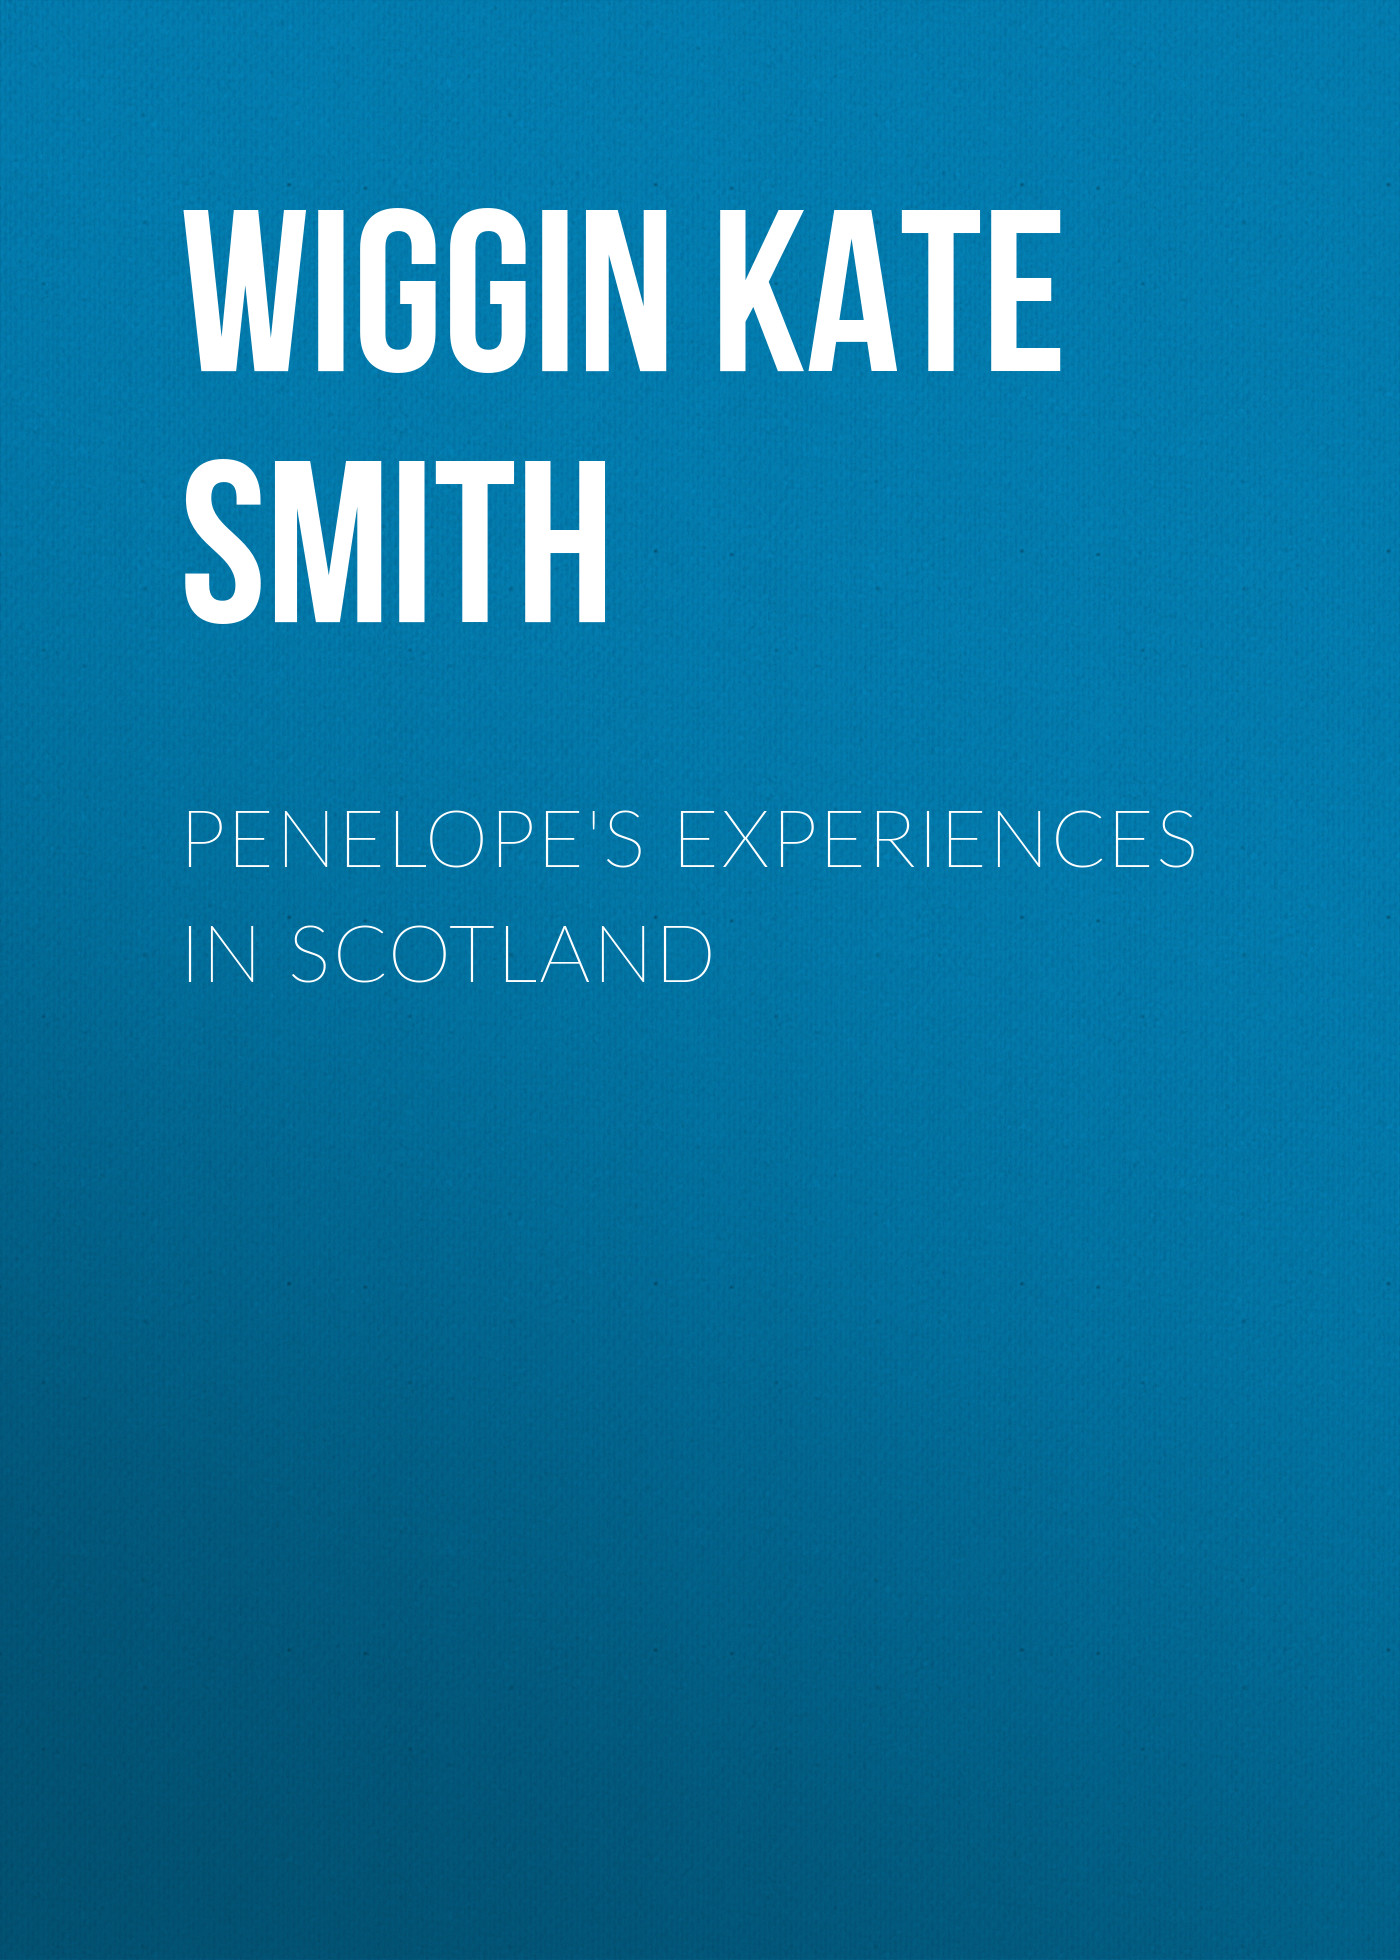 Wiggin Kate Douglas Smith Penelope's Experiences in Scotland брошь solowear 4359 24